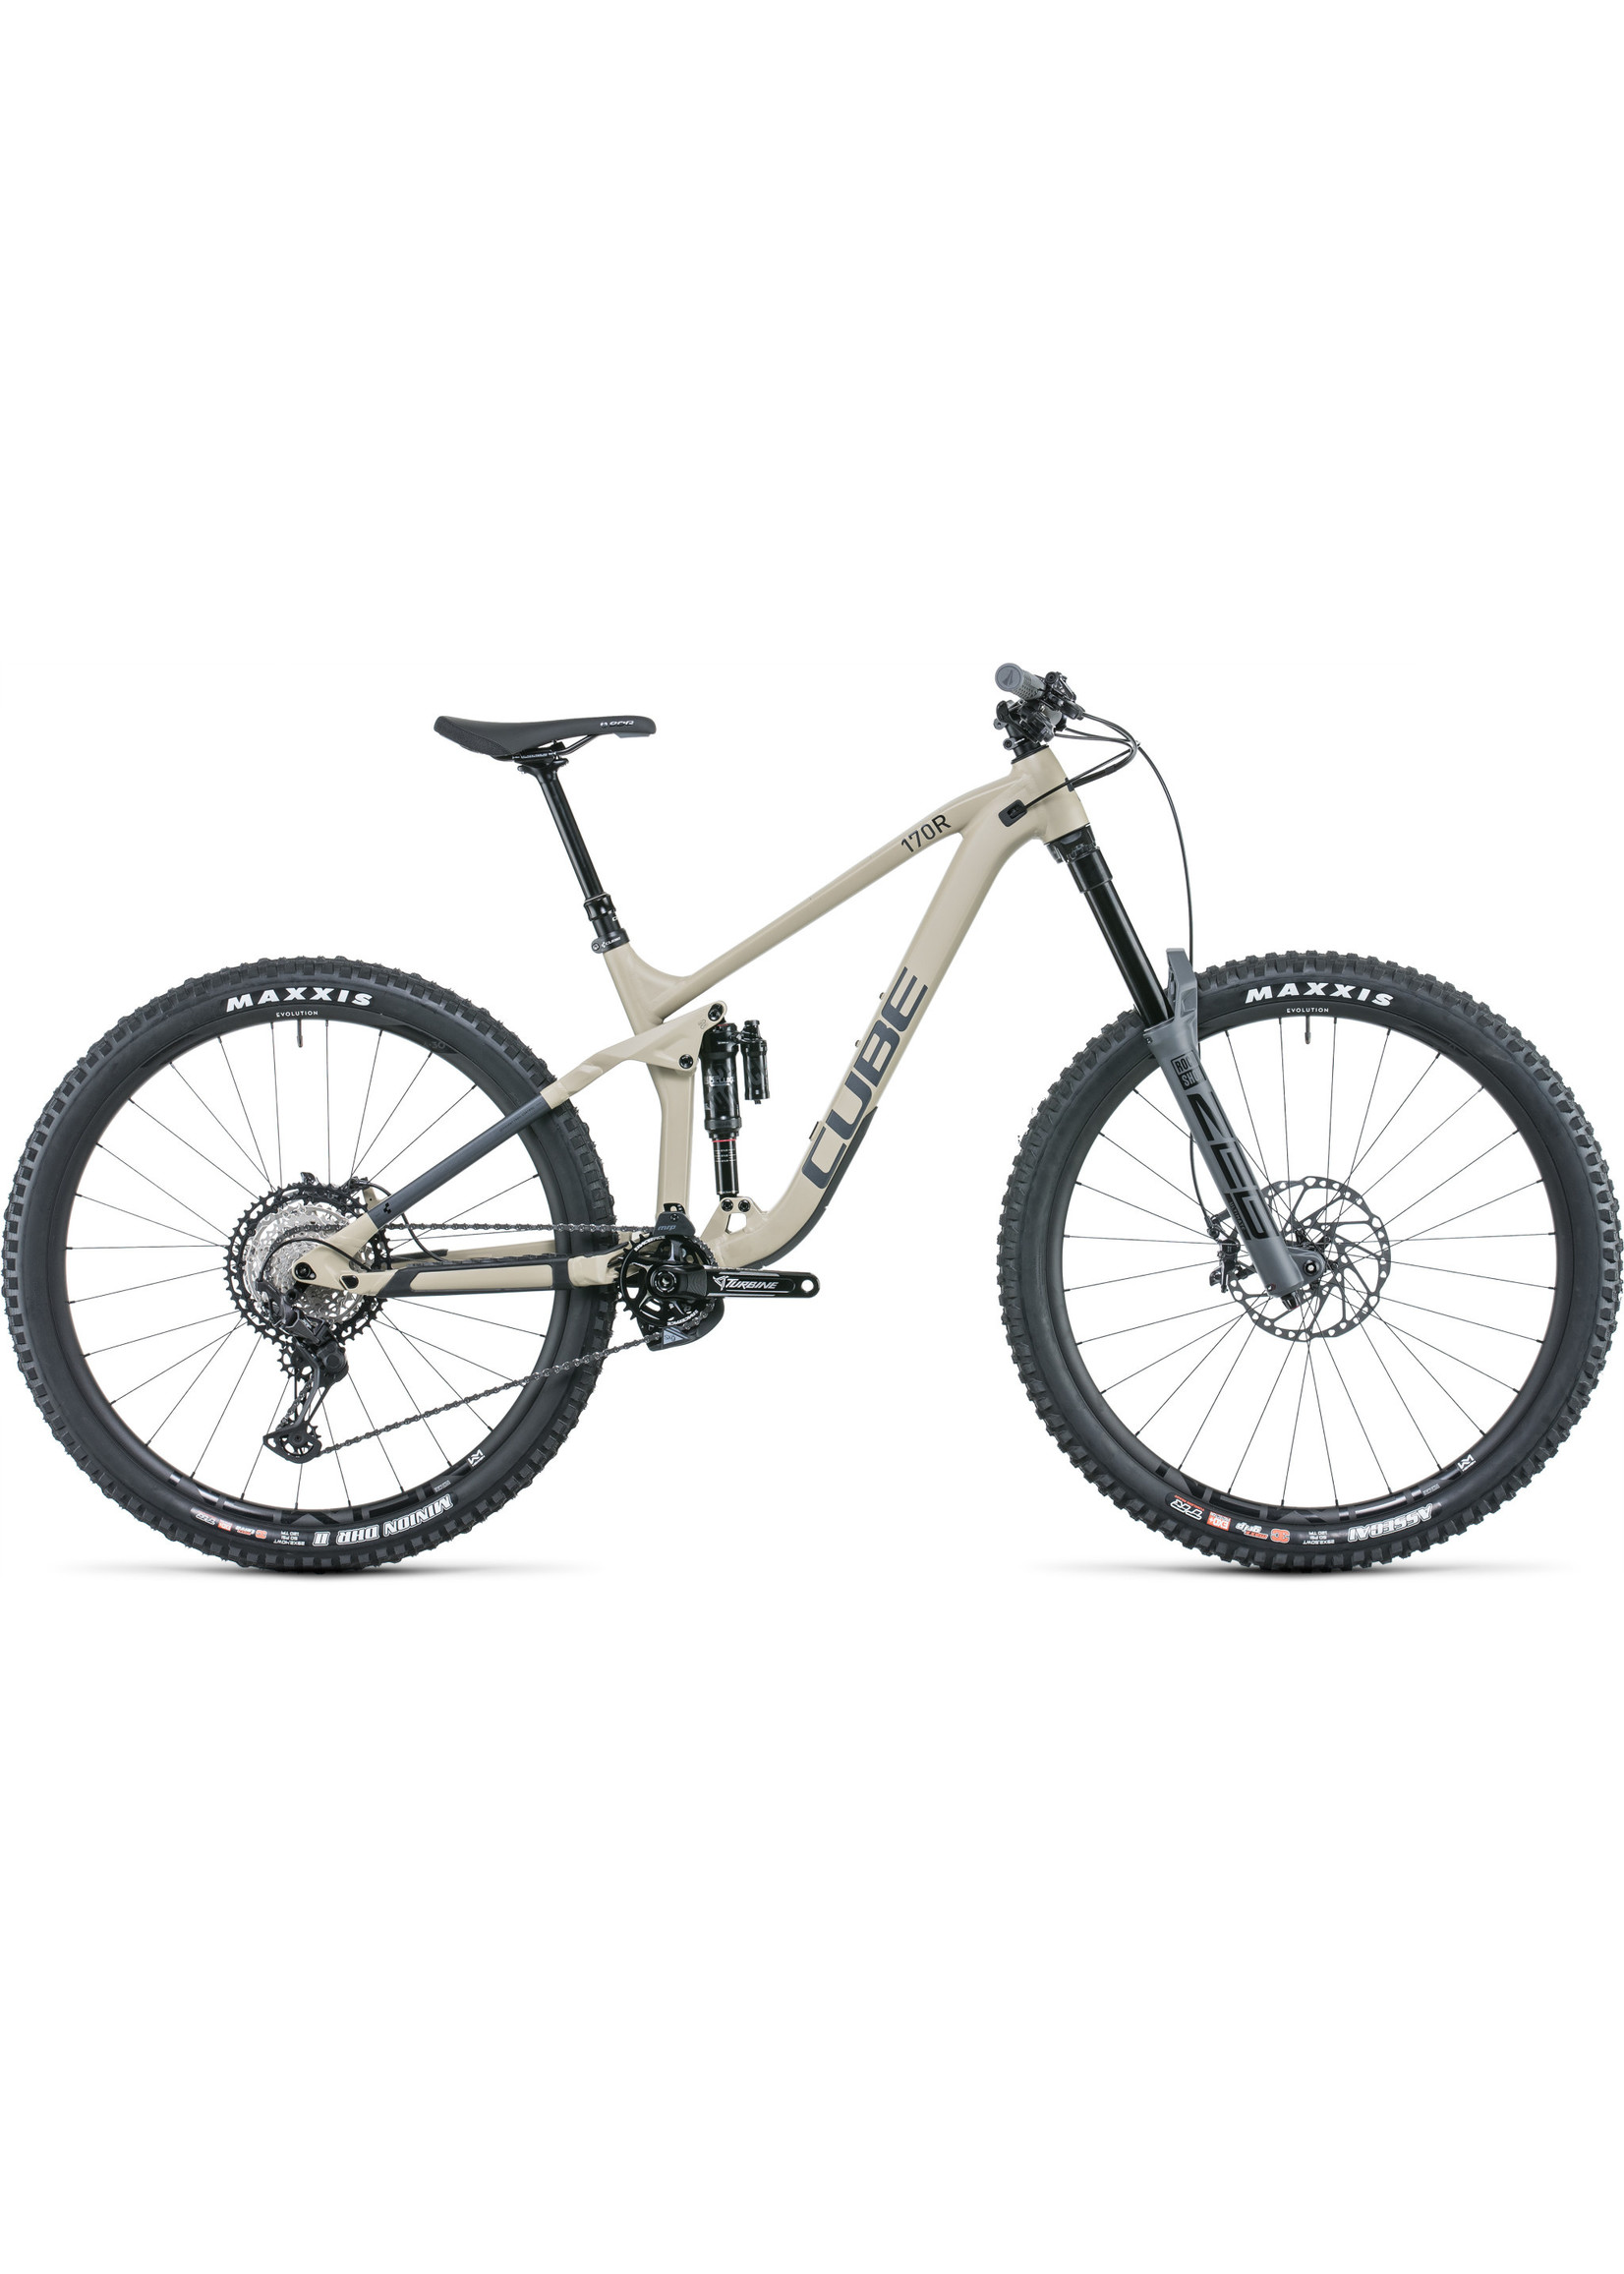 Cube Cube Stereo One77 Race 29 2022